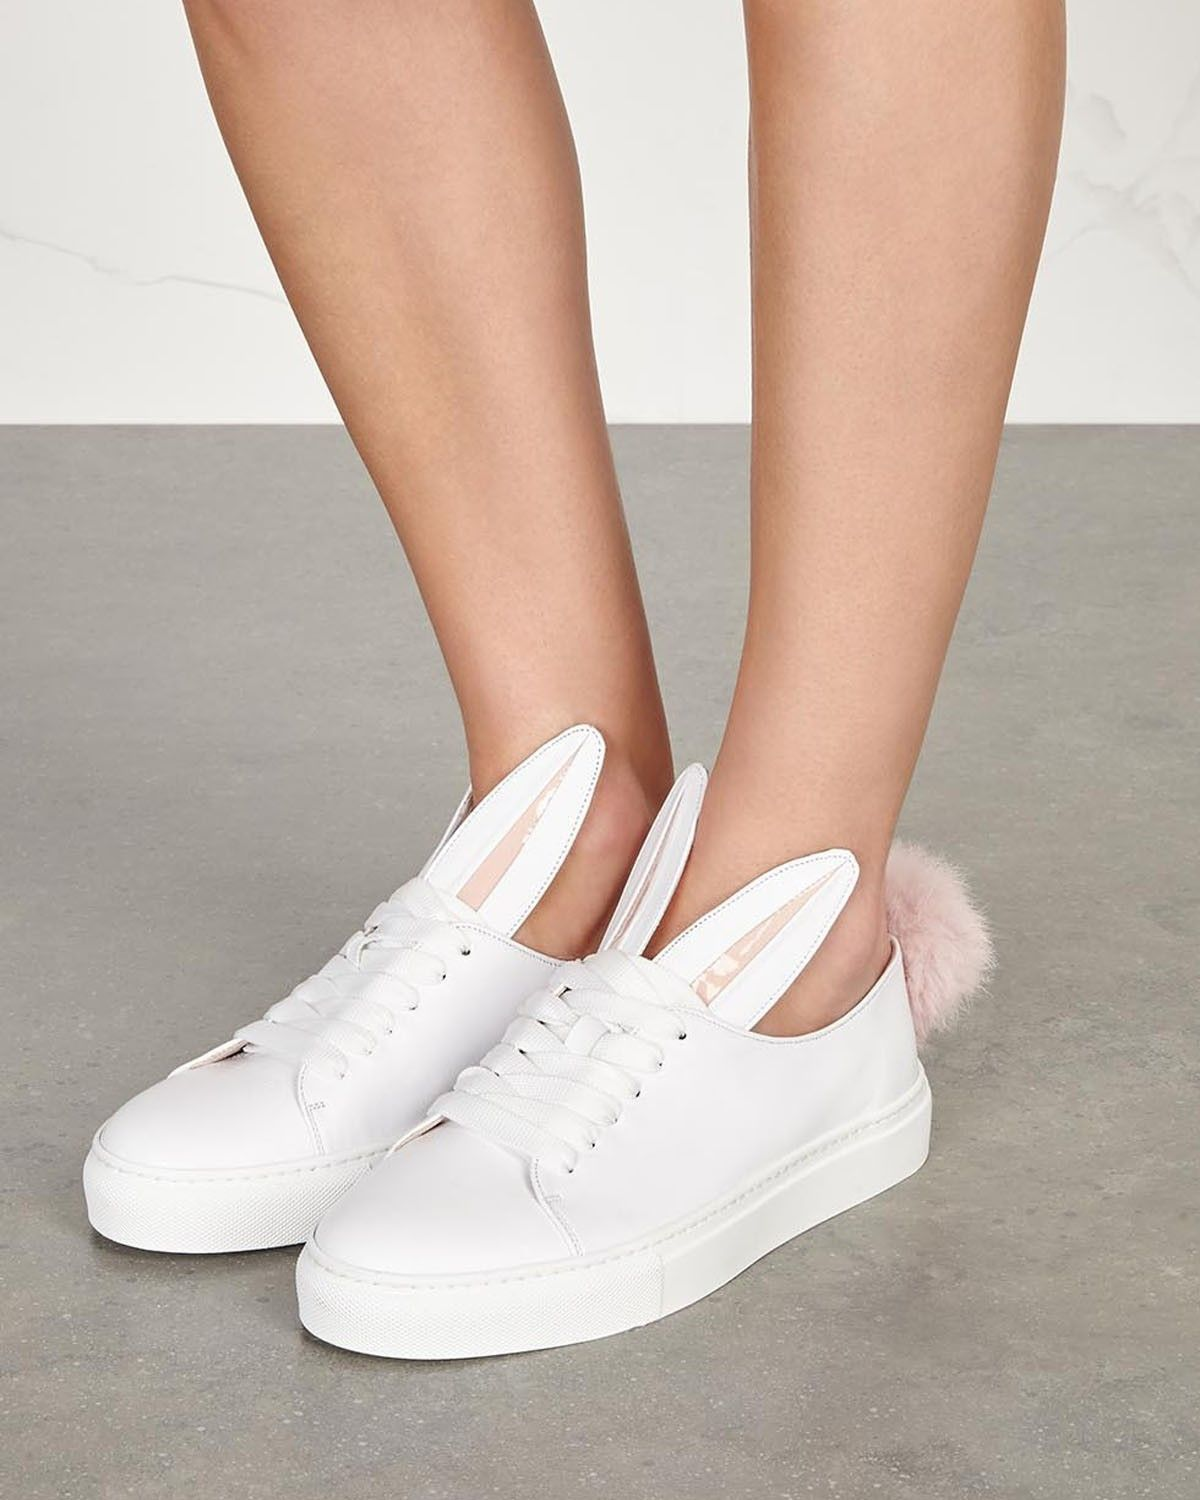 e78a96694ff3 Minna Parikka white leather trainers with pink rabbit fur pompom at heel,  pink patent leather-trimmed rabbit ears design, white rubber sole, round  toe.